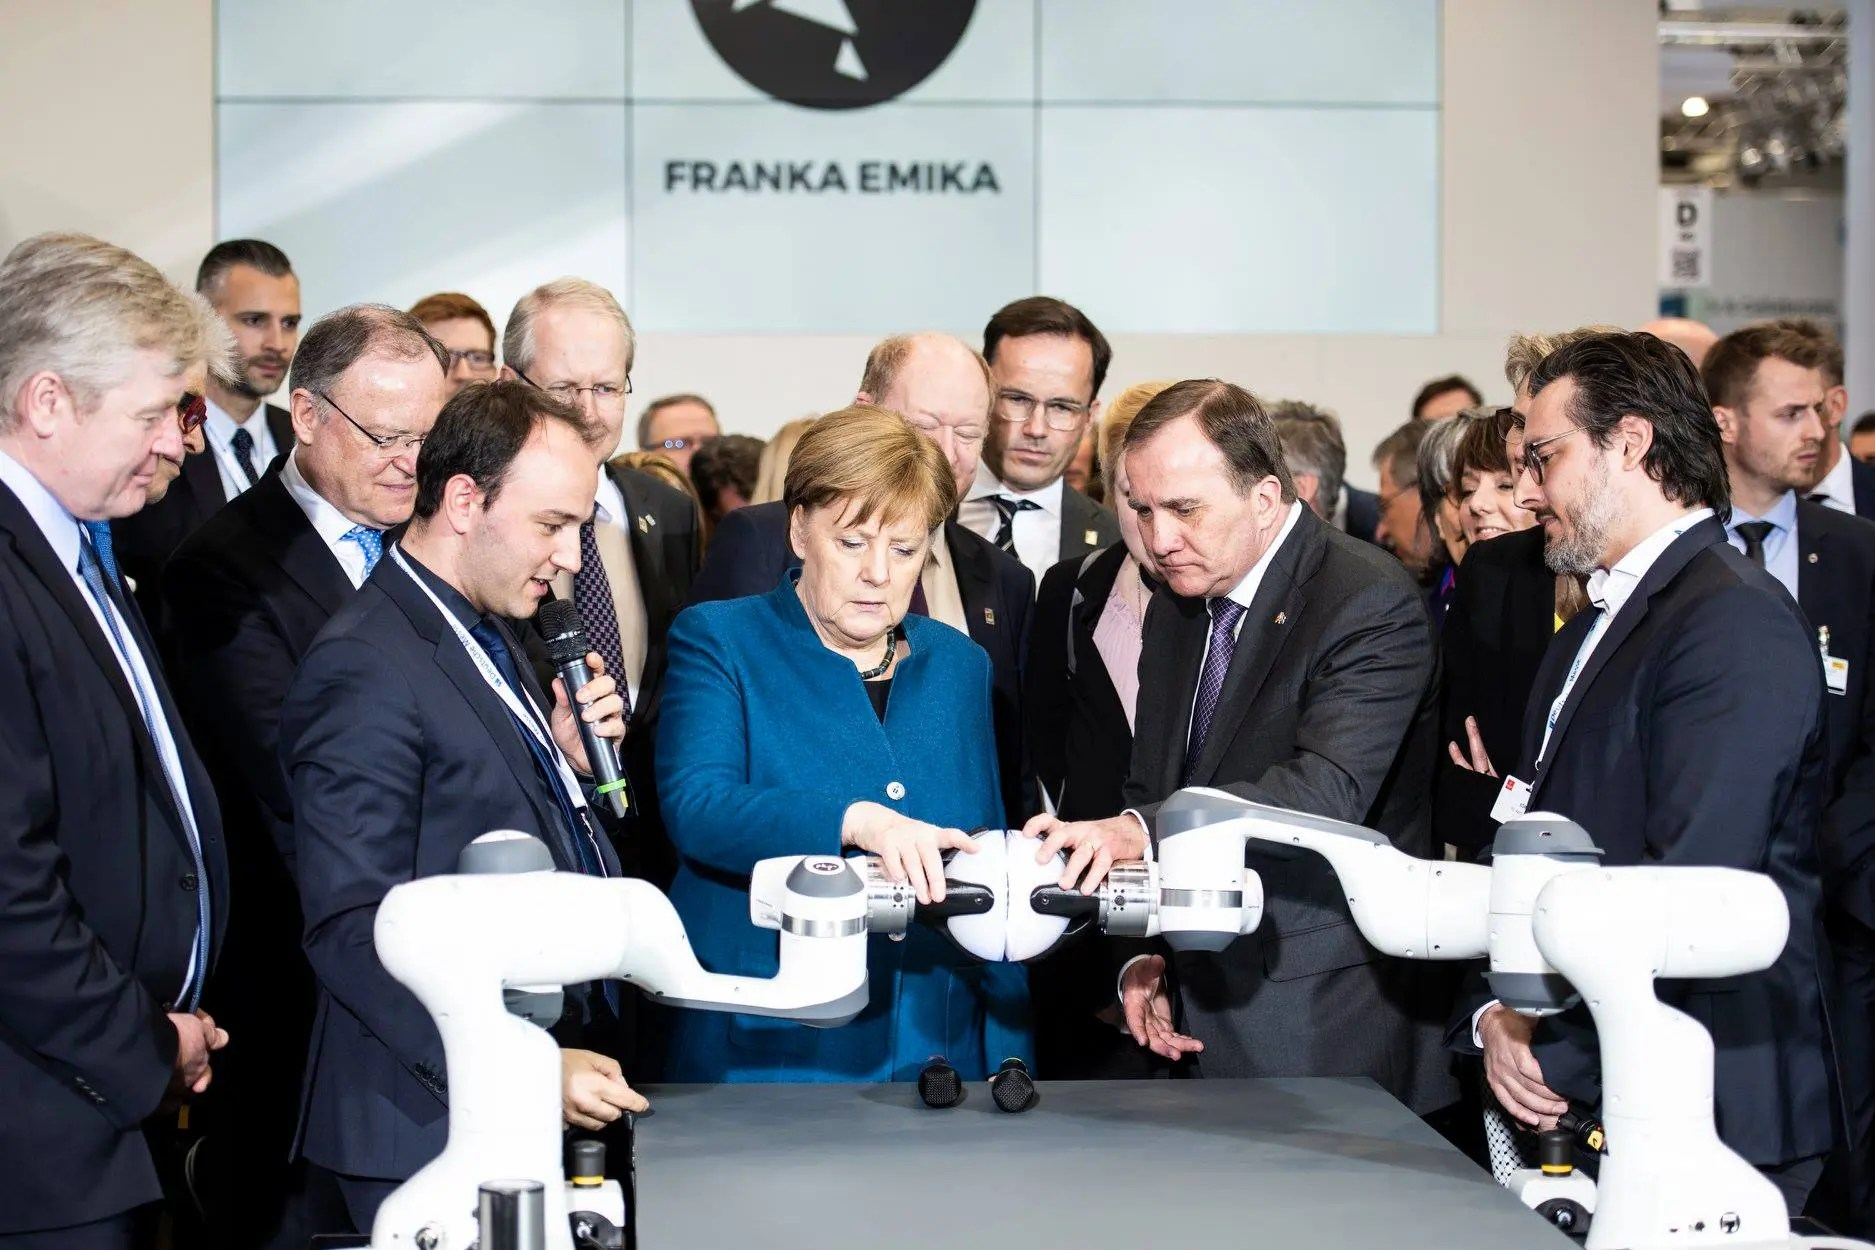 Angela Merkel and Prime Minister of Sweden Stefan Löfven touching the arm of Franka Emika's Panda robot.